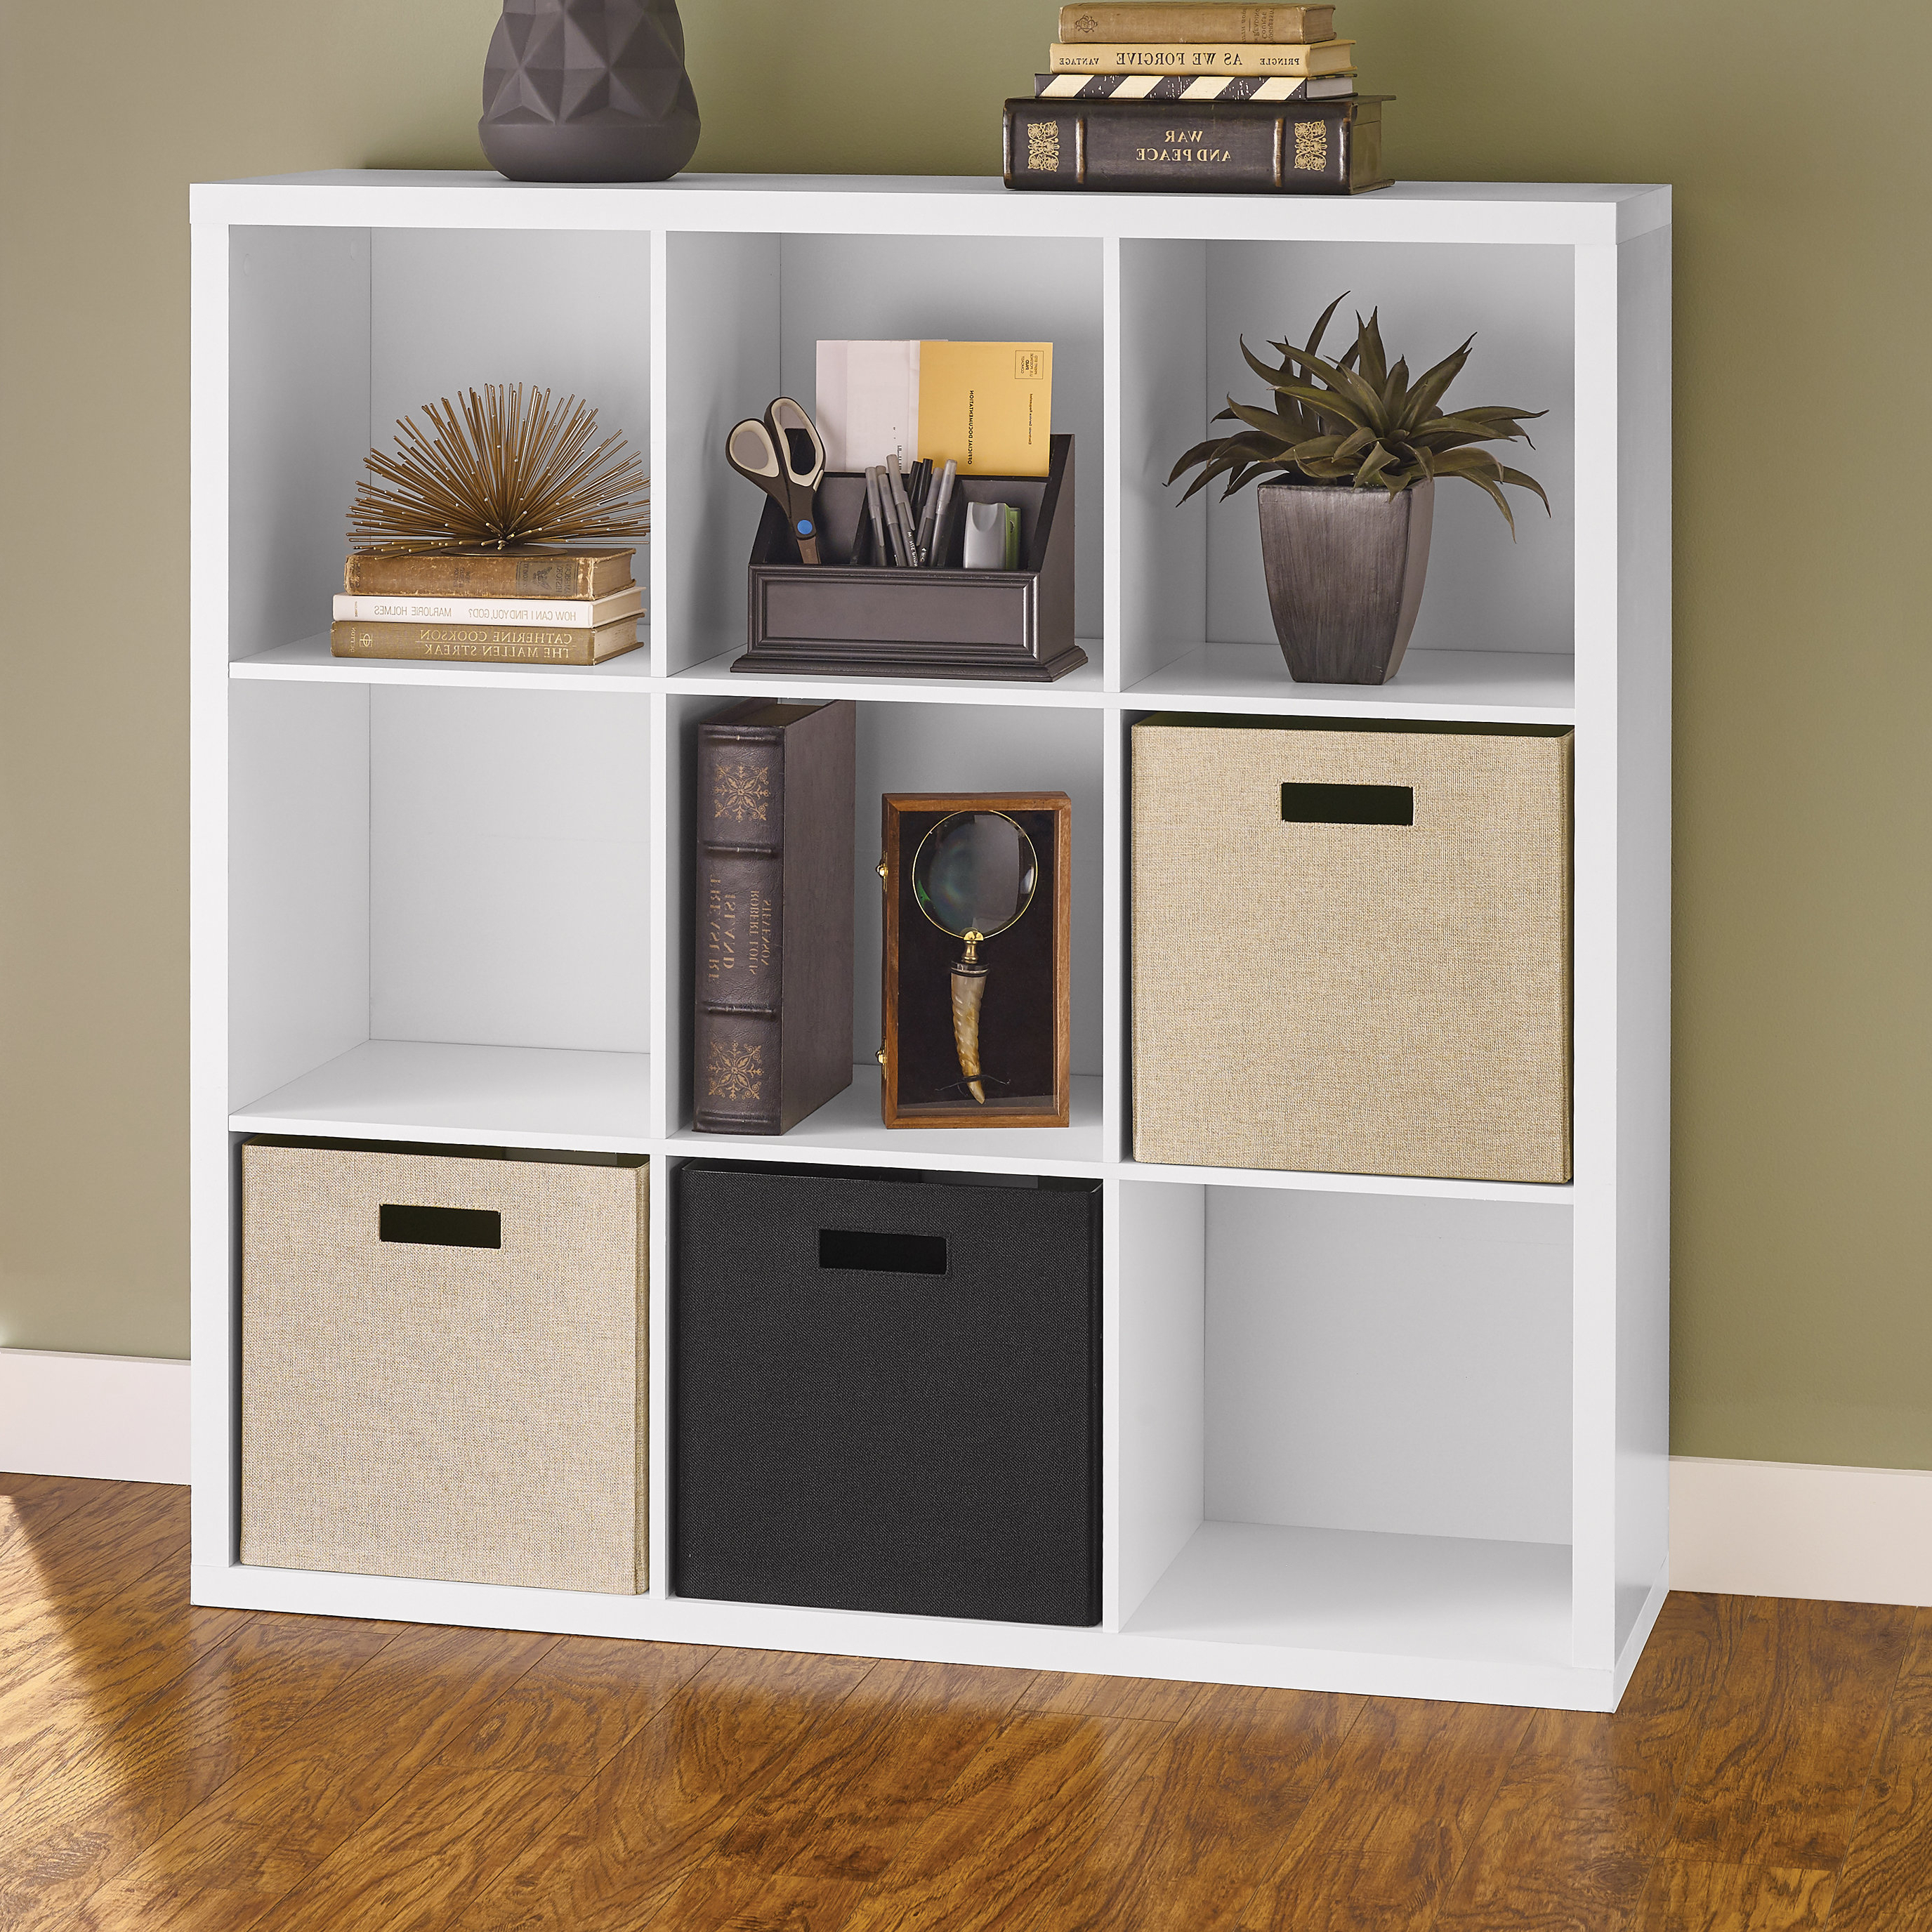 2020 Decorative Storage Cube Bookcases Inside Closetmaid Decorative Storage Cube Bookcase & Reviews (View 3 of 20)